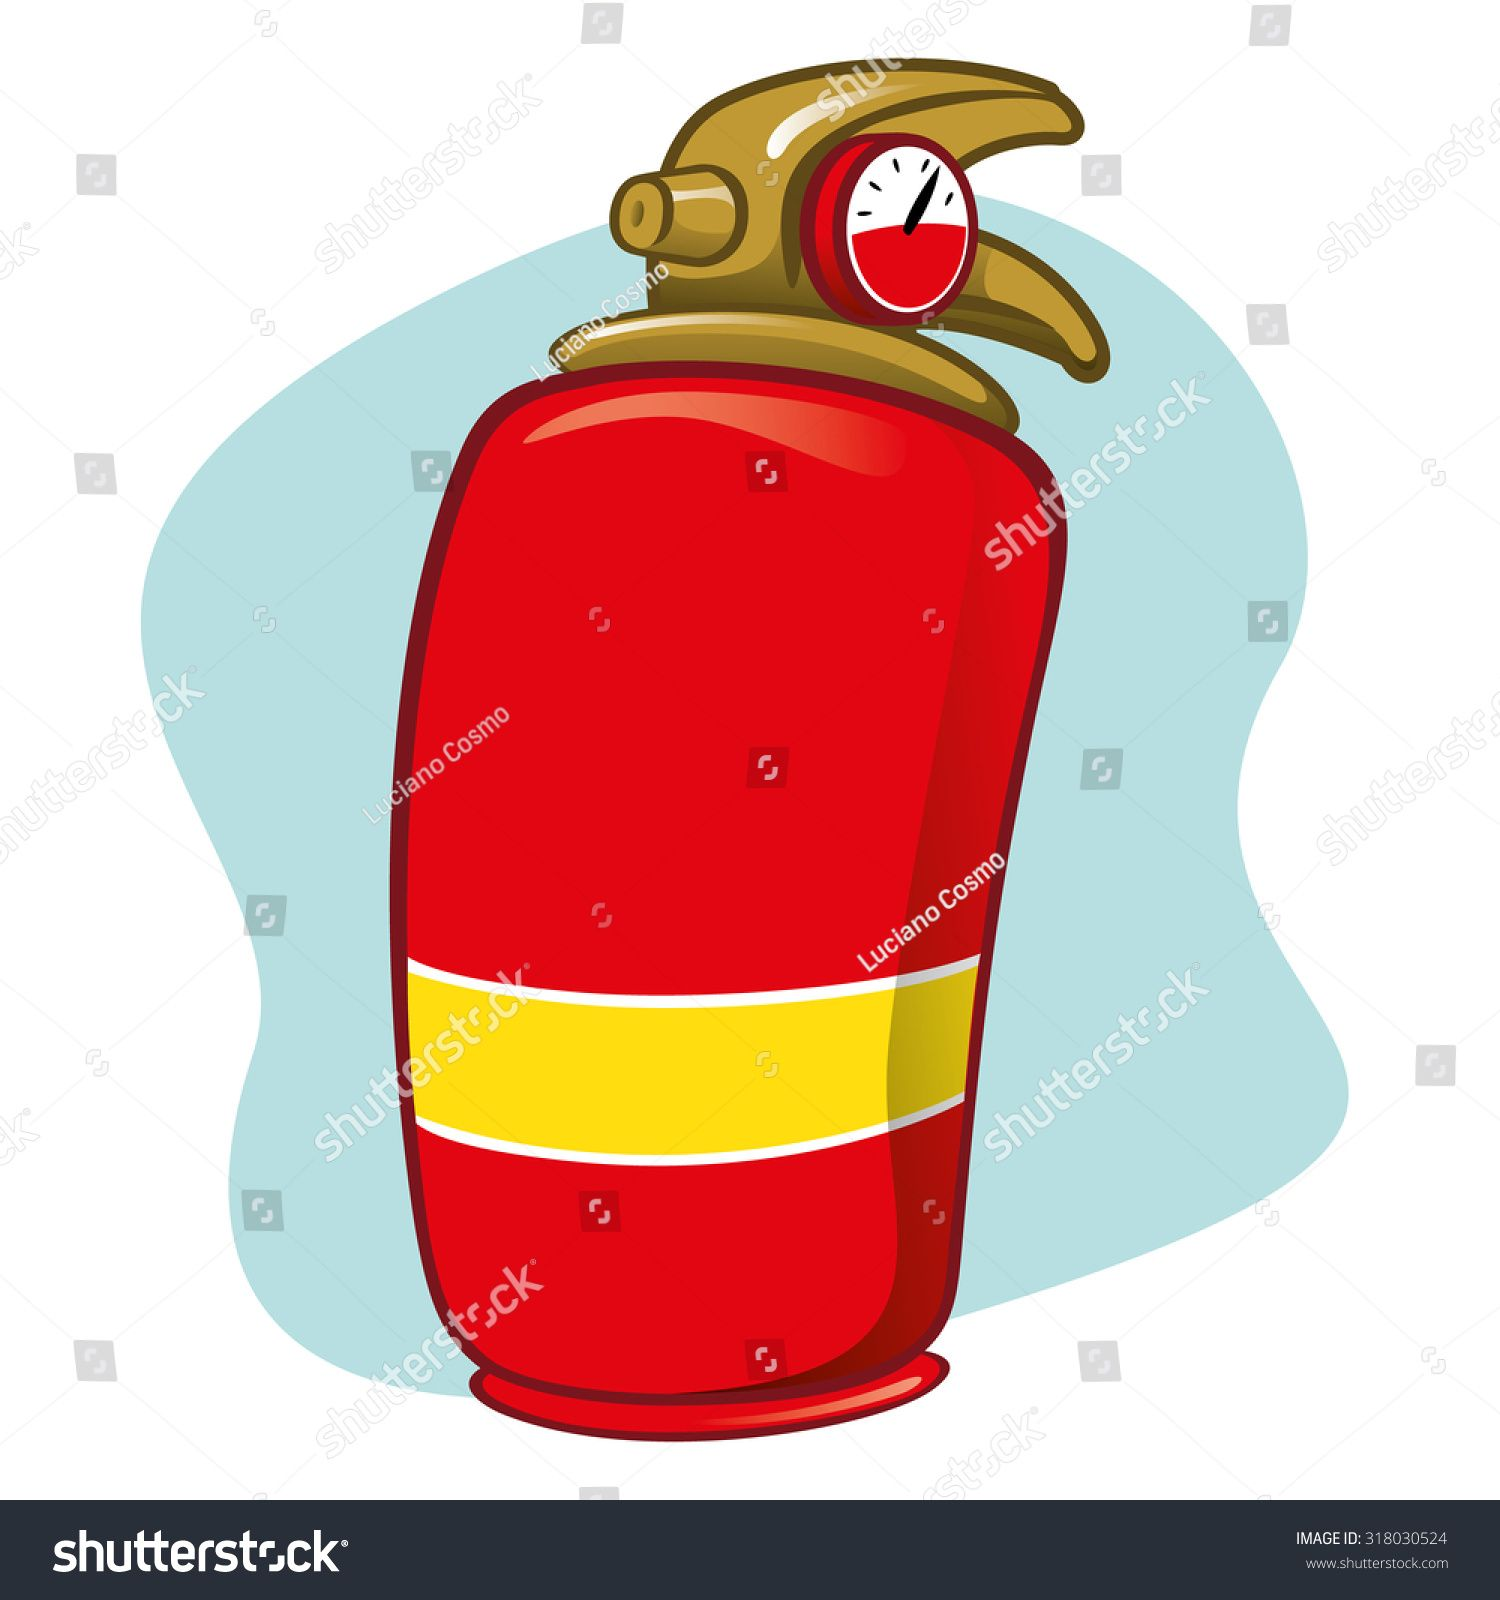 Item Illustration if safety fire extinguisher. Ideal for